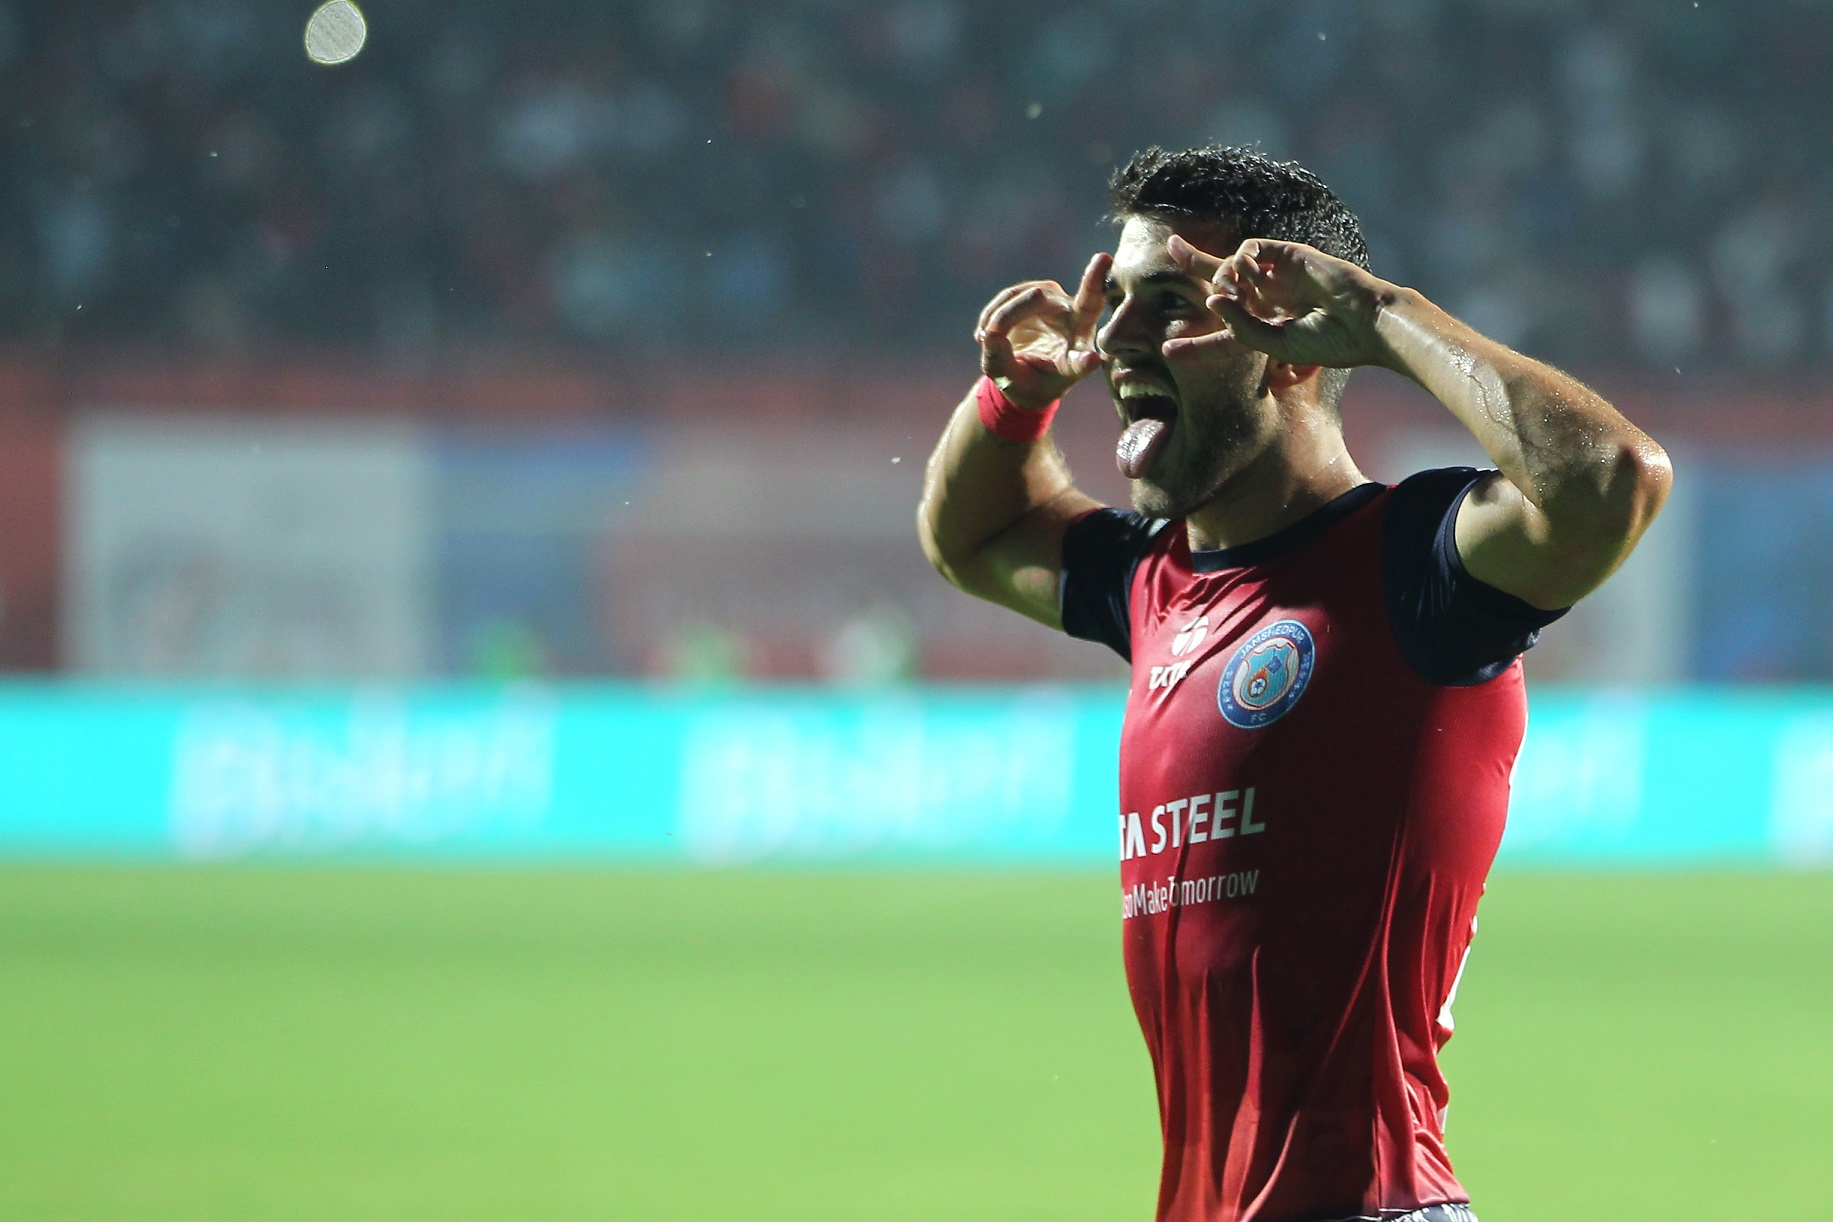 Jamshedpur player Sergio Cidoncha celebrates the goal against ATK the match in Hero ISL